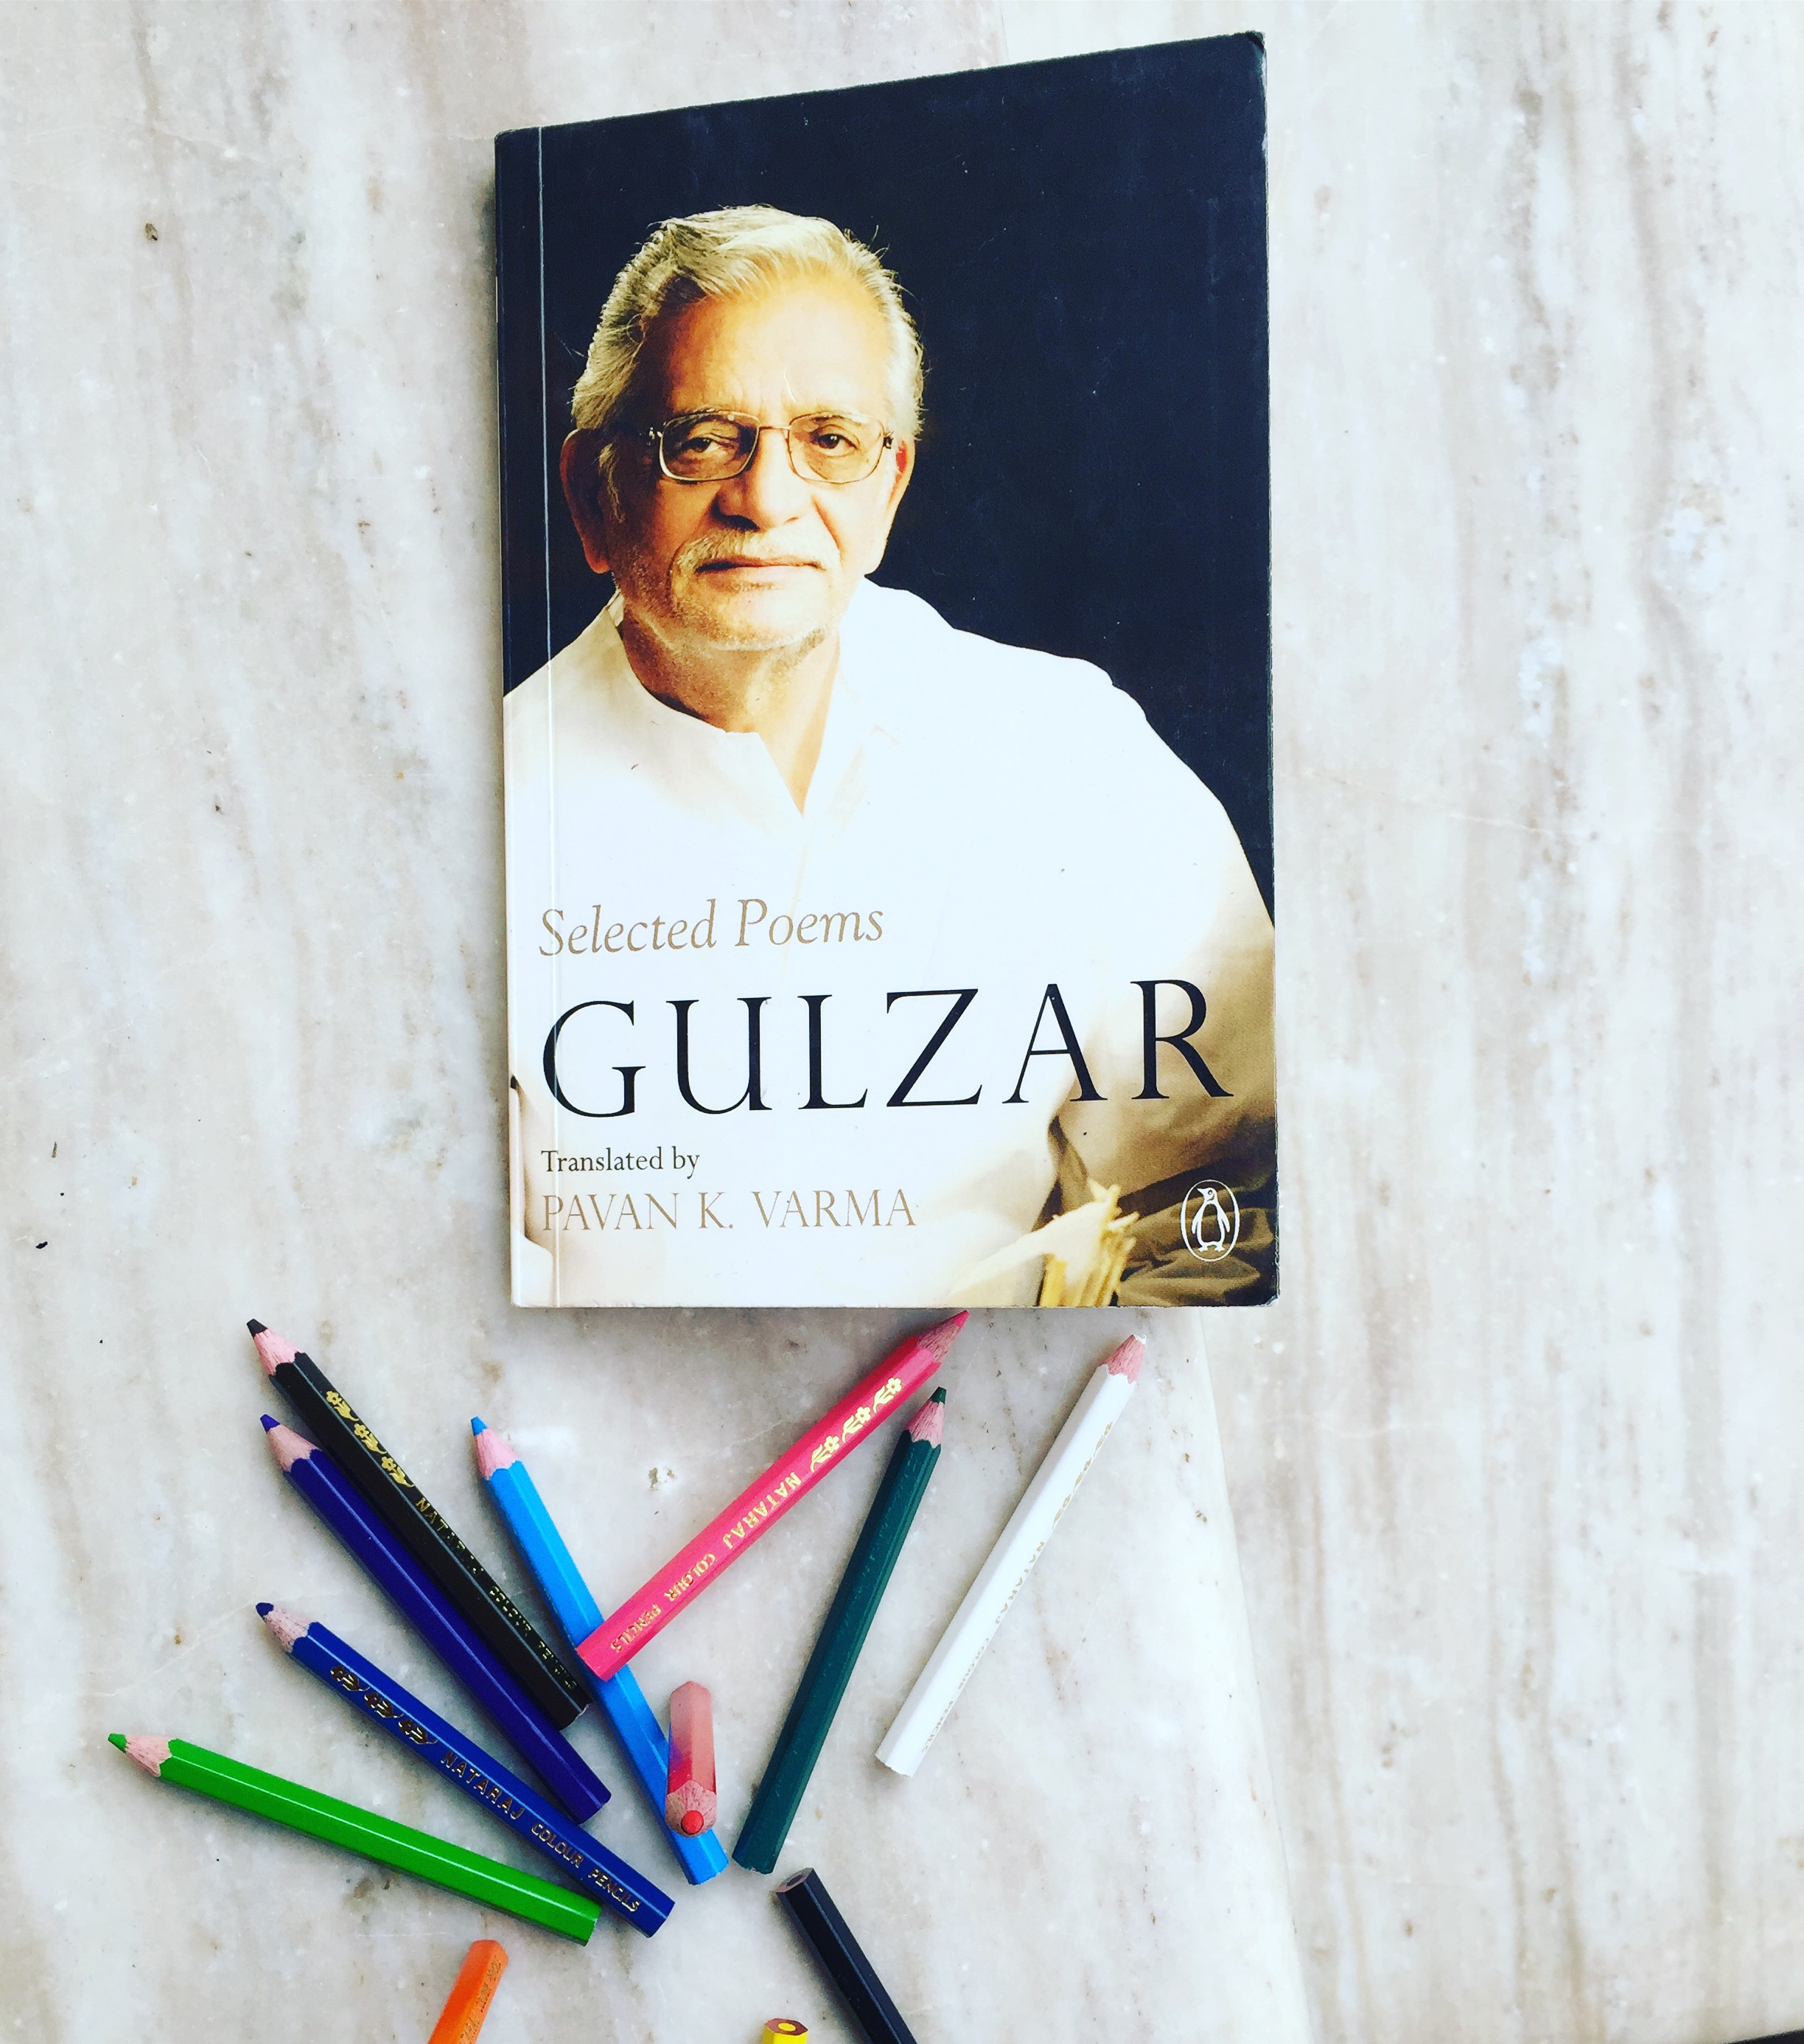 selected poems by Gulzar is a must read book review